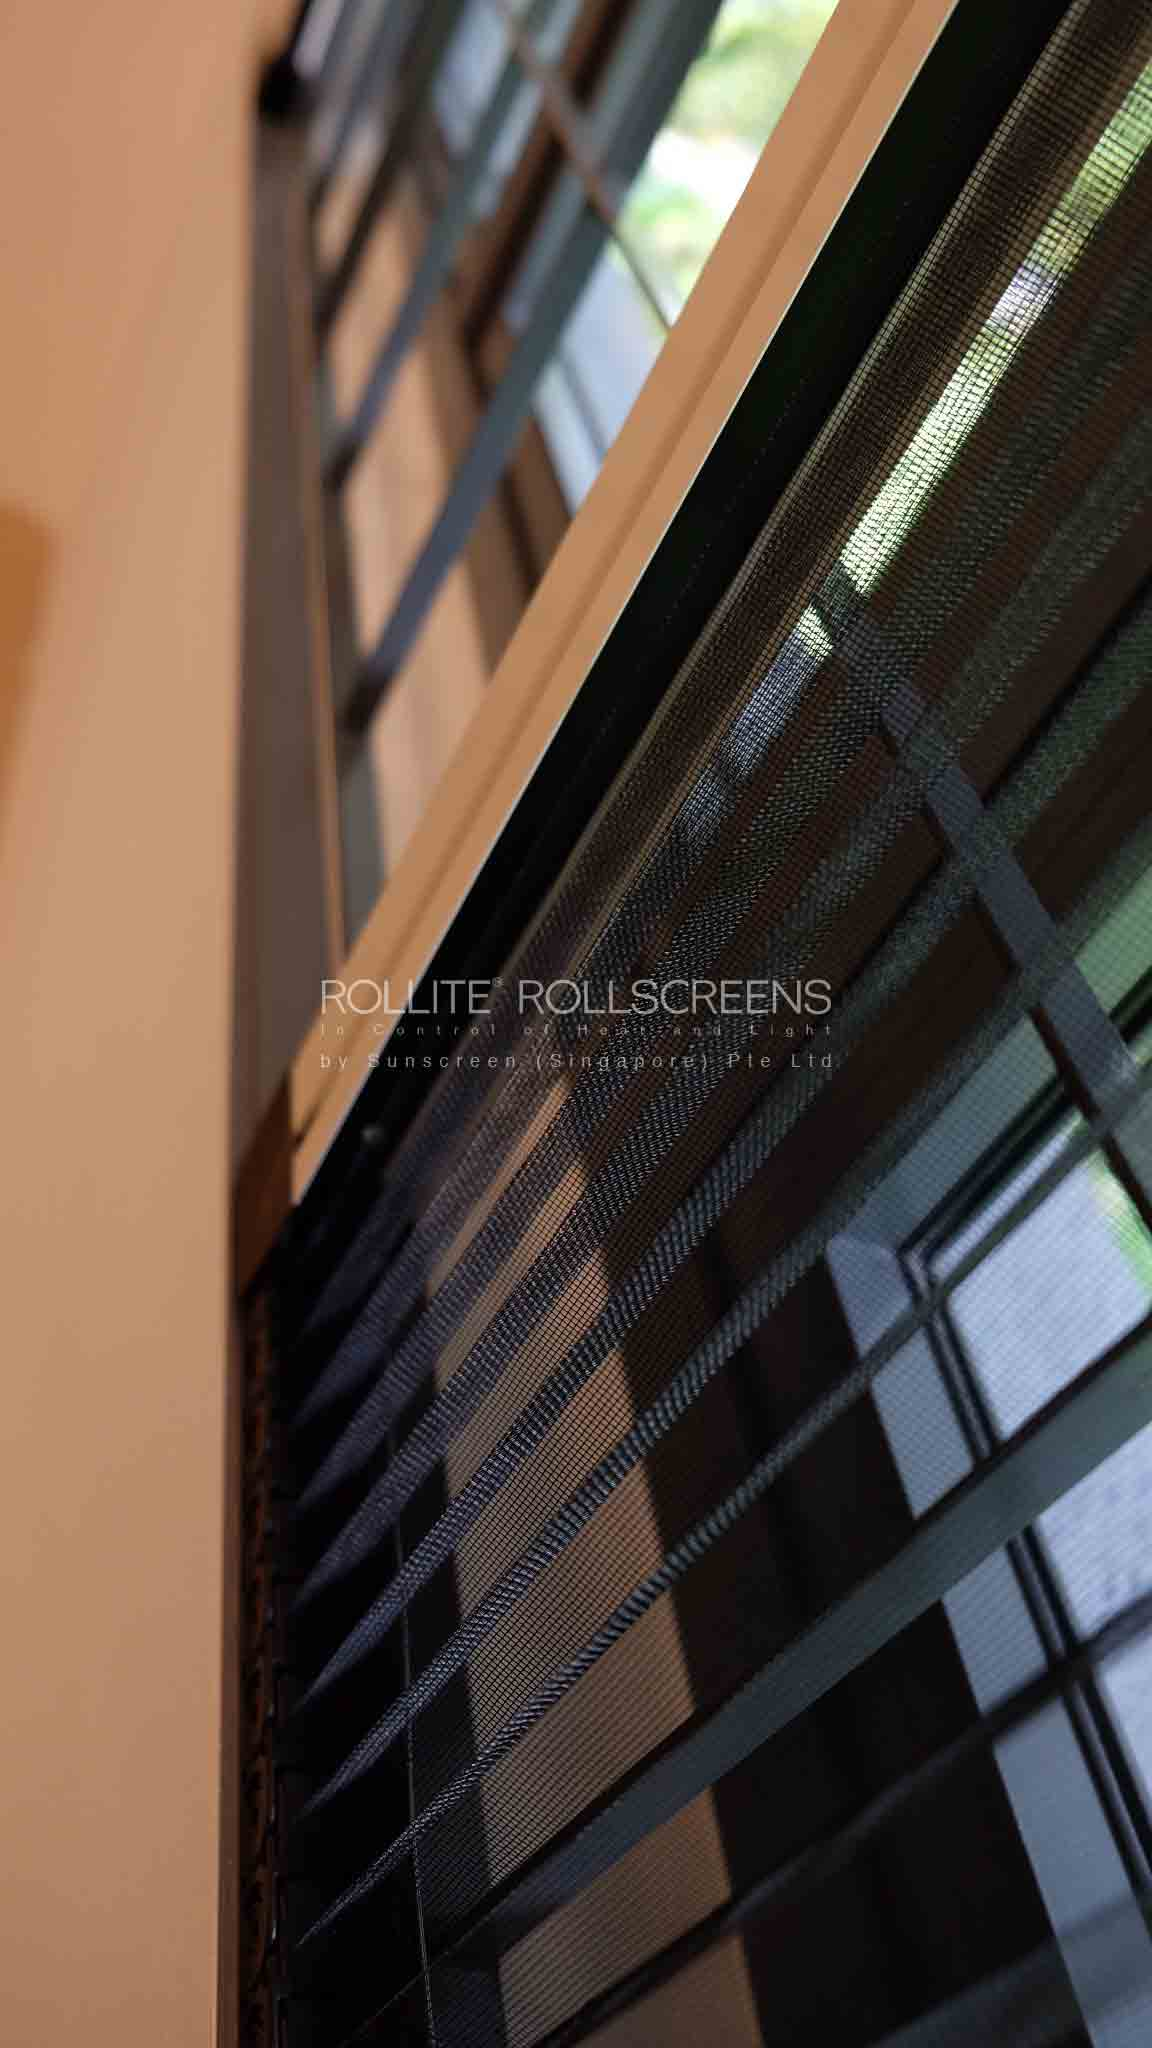 Sunscreen-Singapore_Rollite-Rollscreens-45